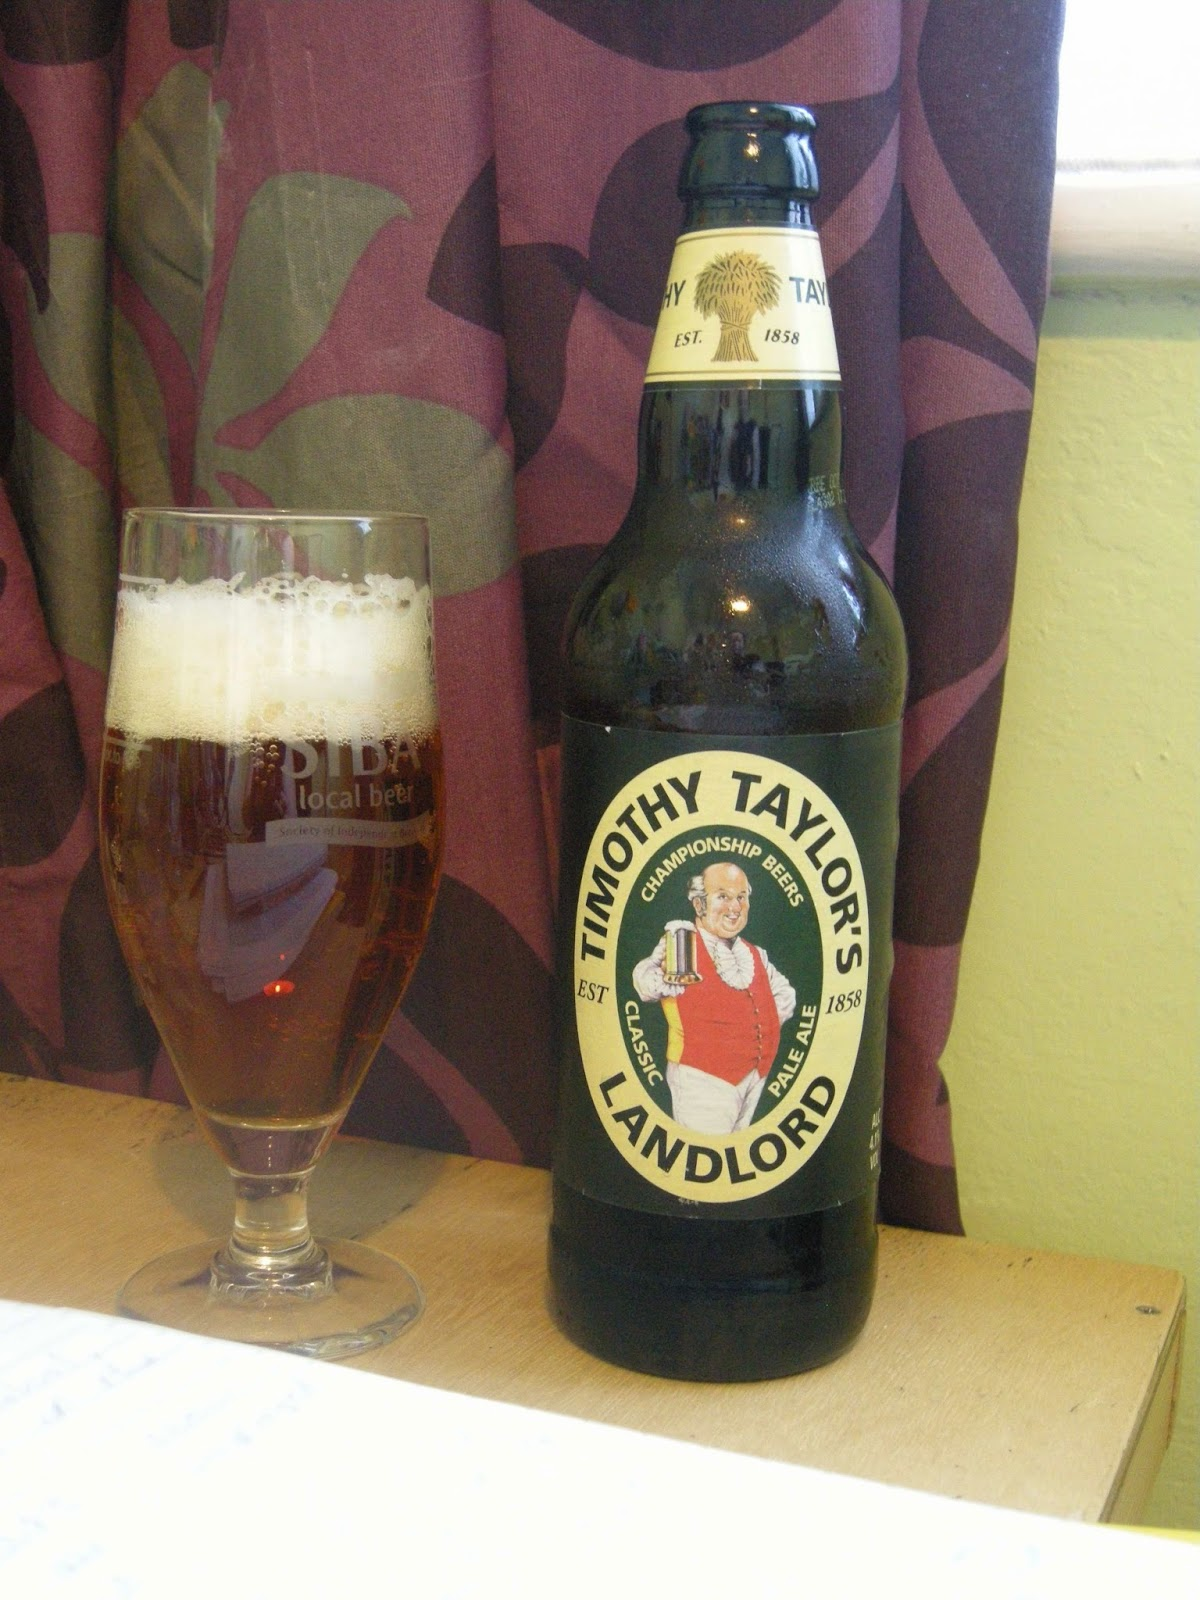 We sampled Timothy Taylor's Landlord (4.3%) - once a bitter and now a pale ale